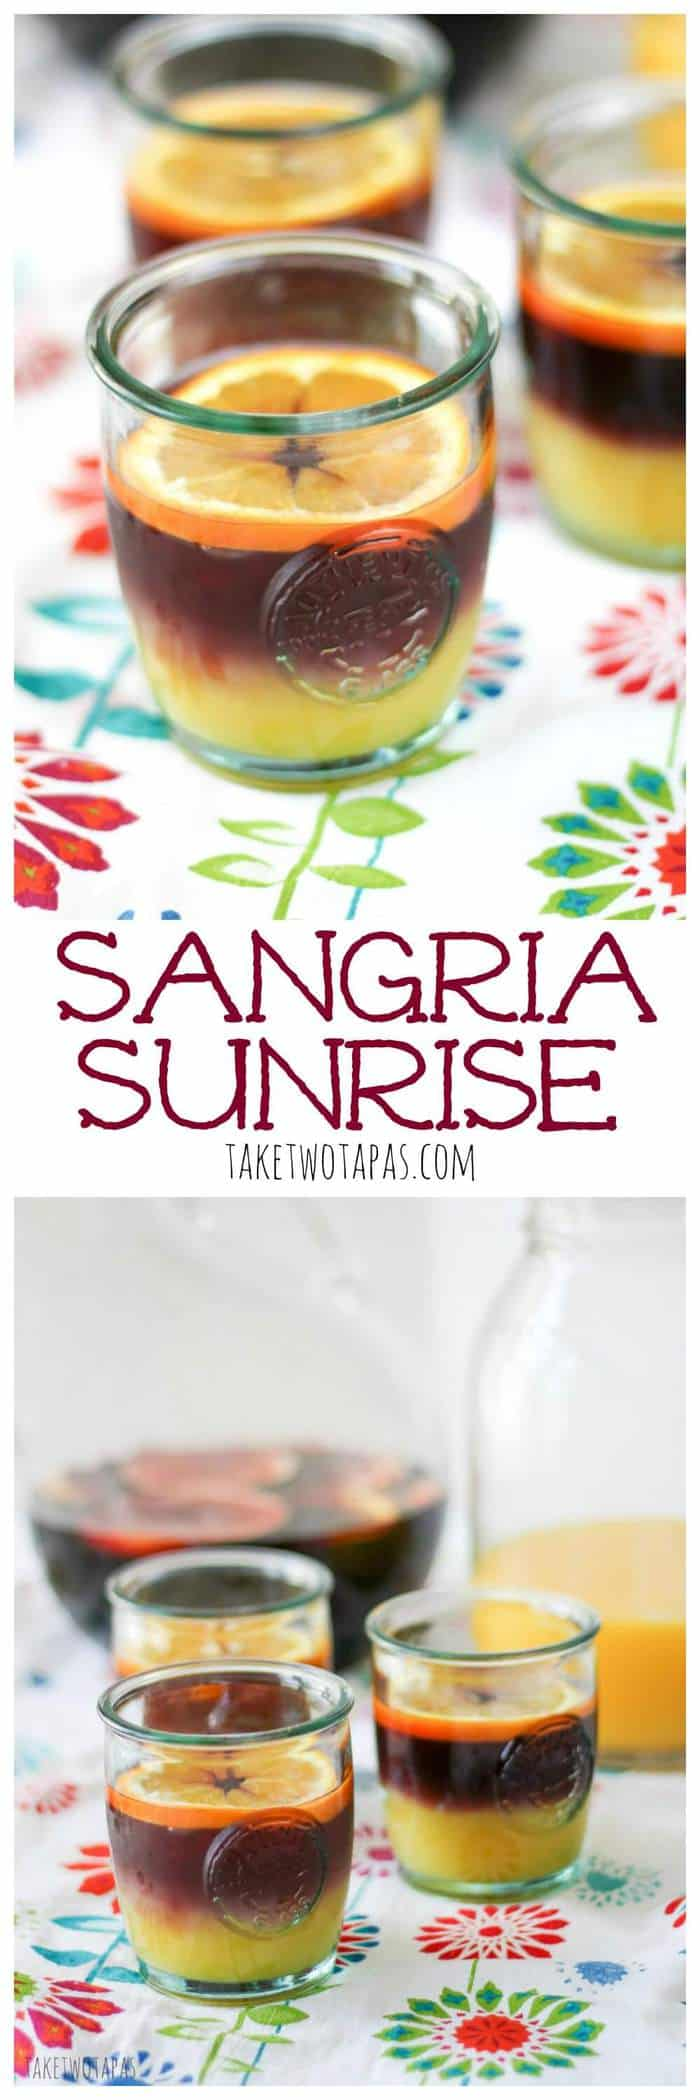 Fruity sangria meets orange juice in this twist on the Tequila Sunrise. Sangria Sunrise Recipe | Take Two Tapas